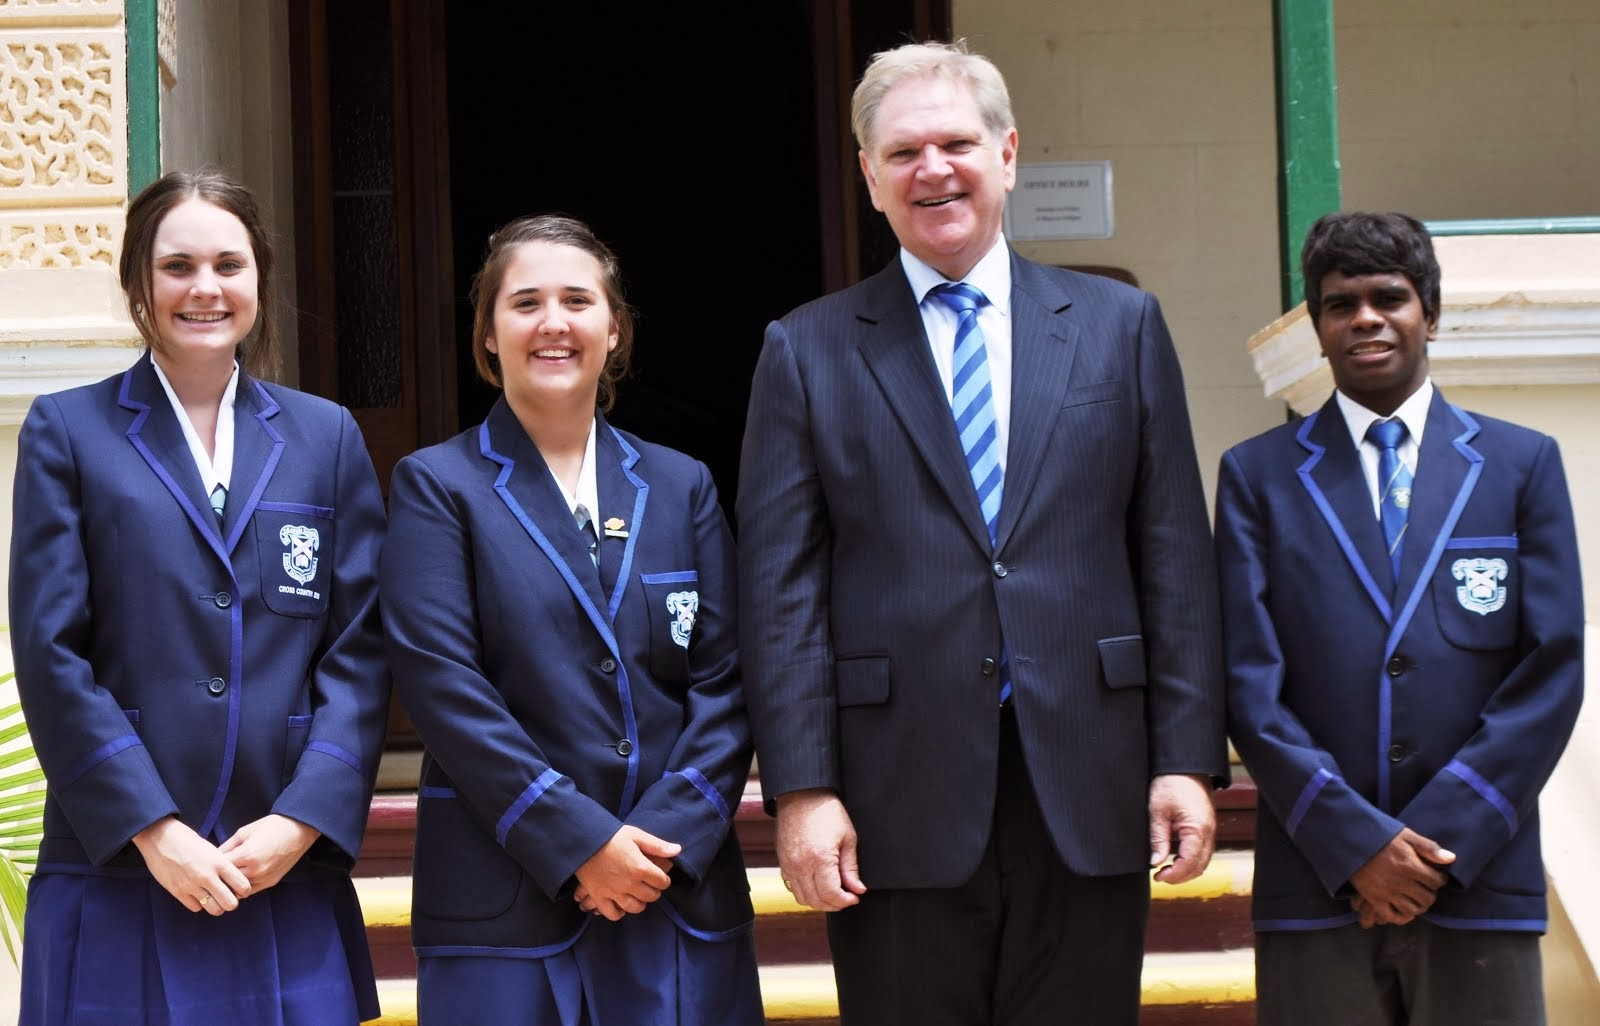 2014 House Captains with Mr Fairbairn